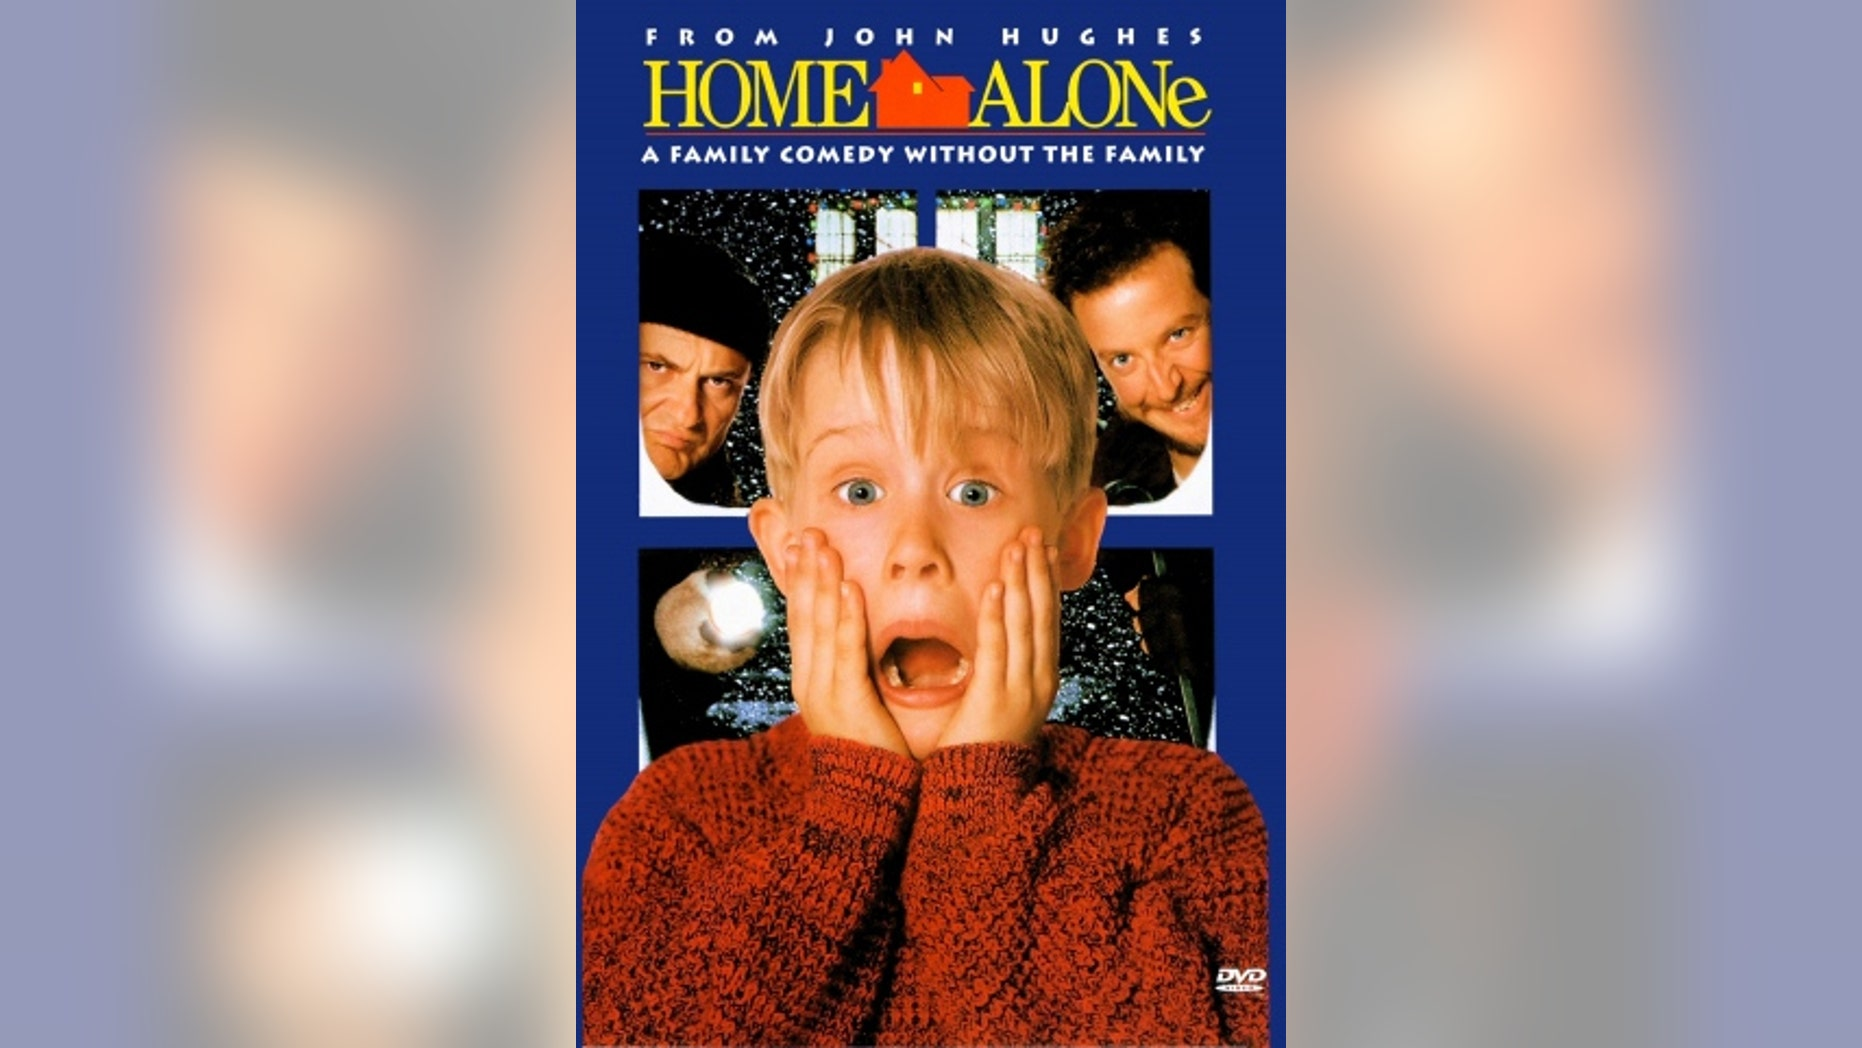 """""""Home Alone,"""" which starred Macaulay Culkin, tells the story of an eight-year-old troublemaker who must protect his house from a pair of burglars when he is accidentally left home alone by his family during Christmas vacation."""